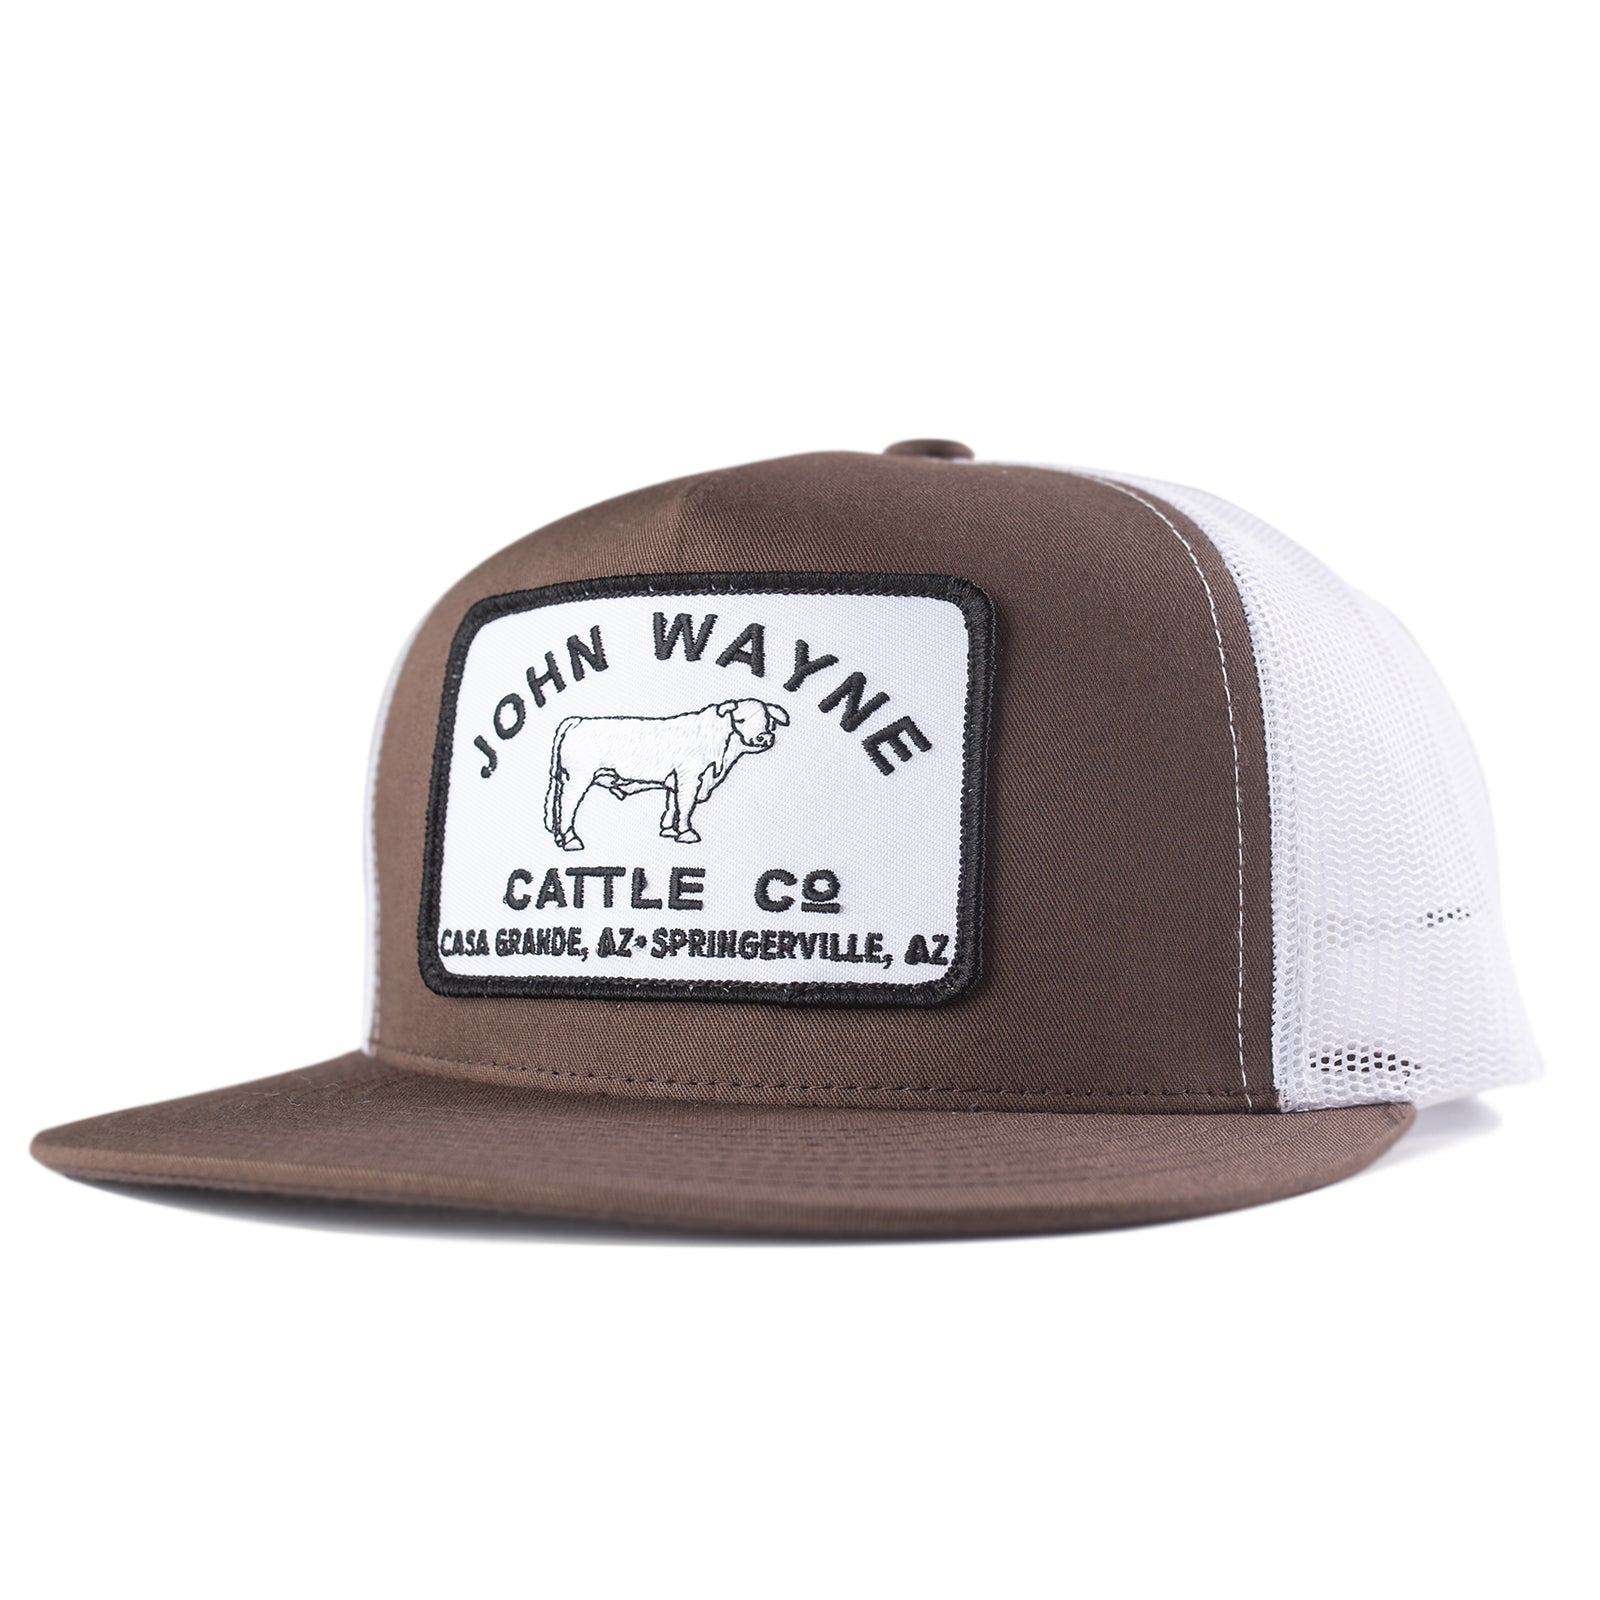 Flat Bill Cattle Co Trucker Hat - Brown/White